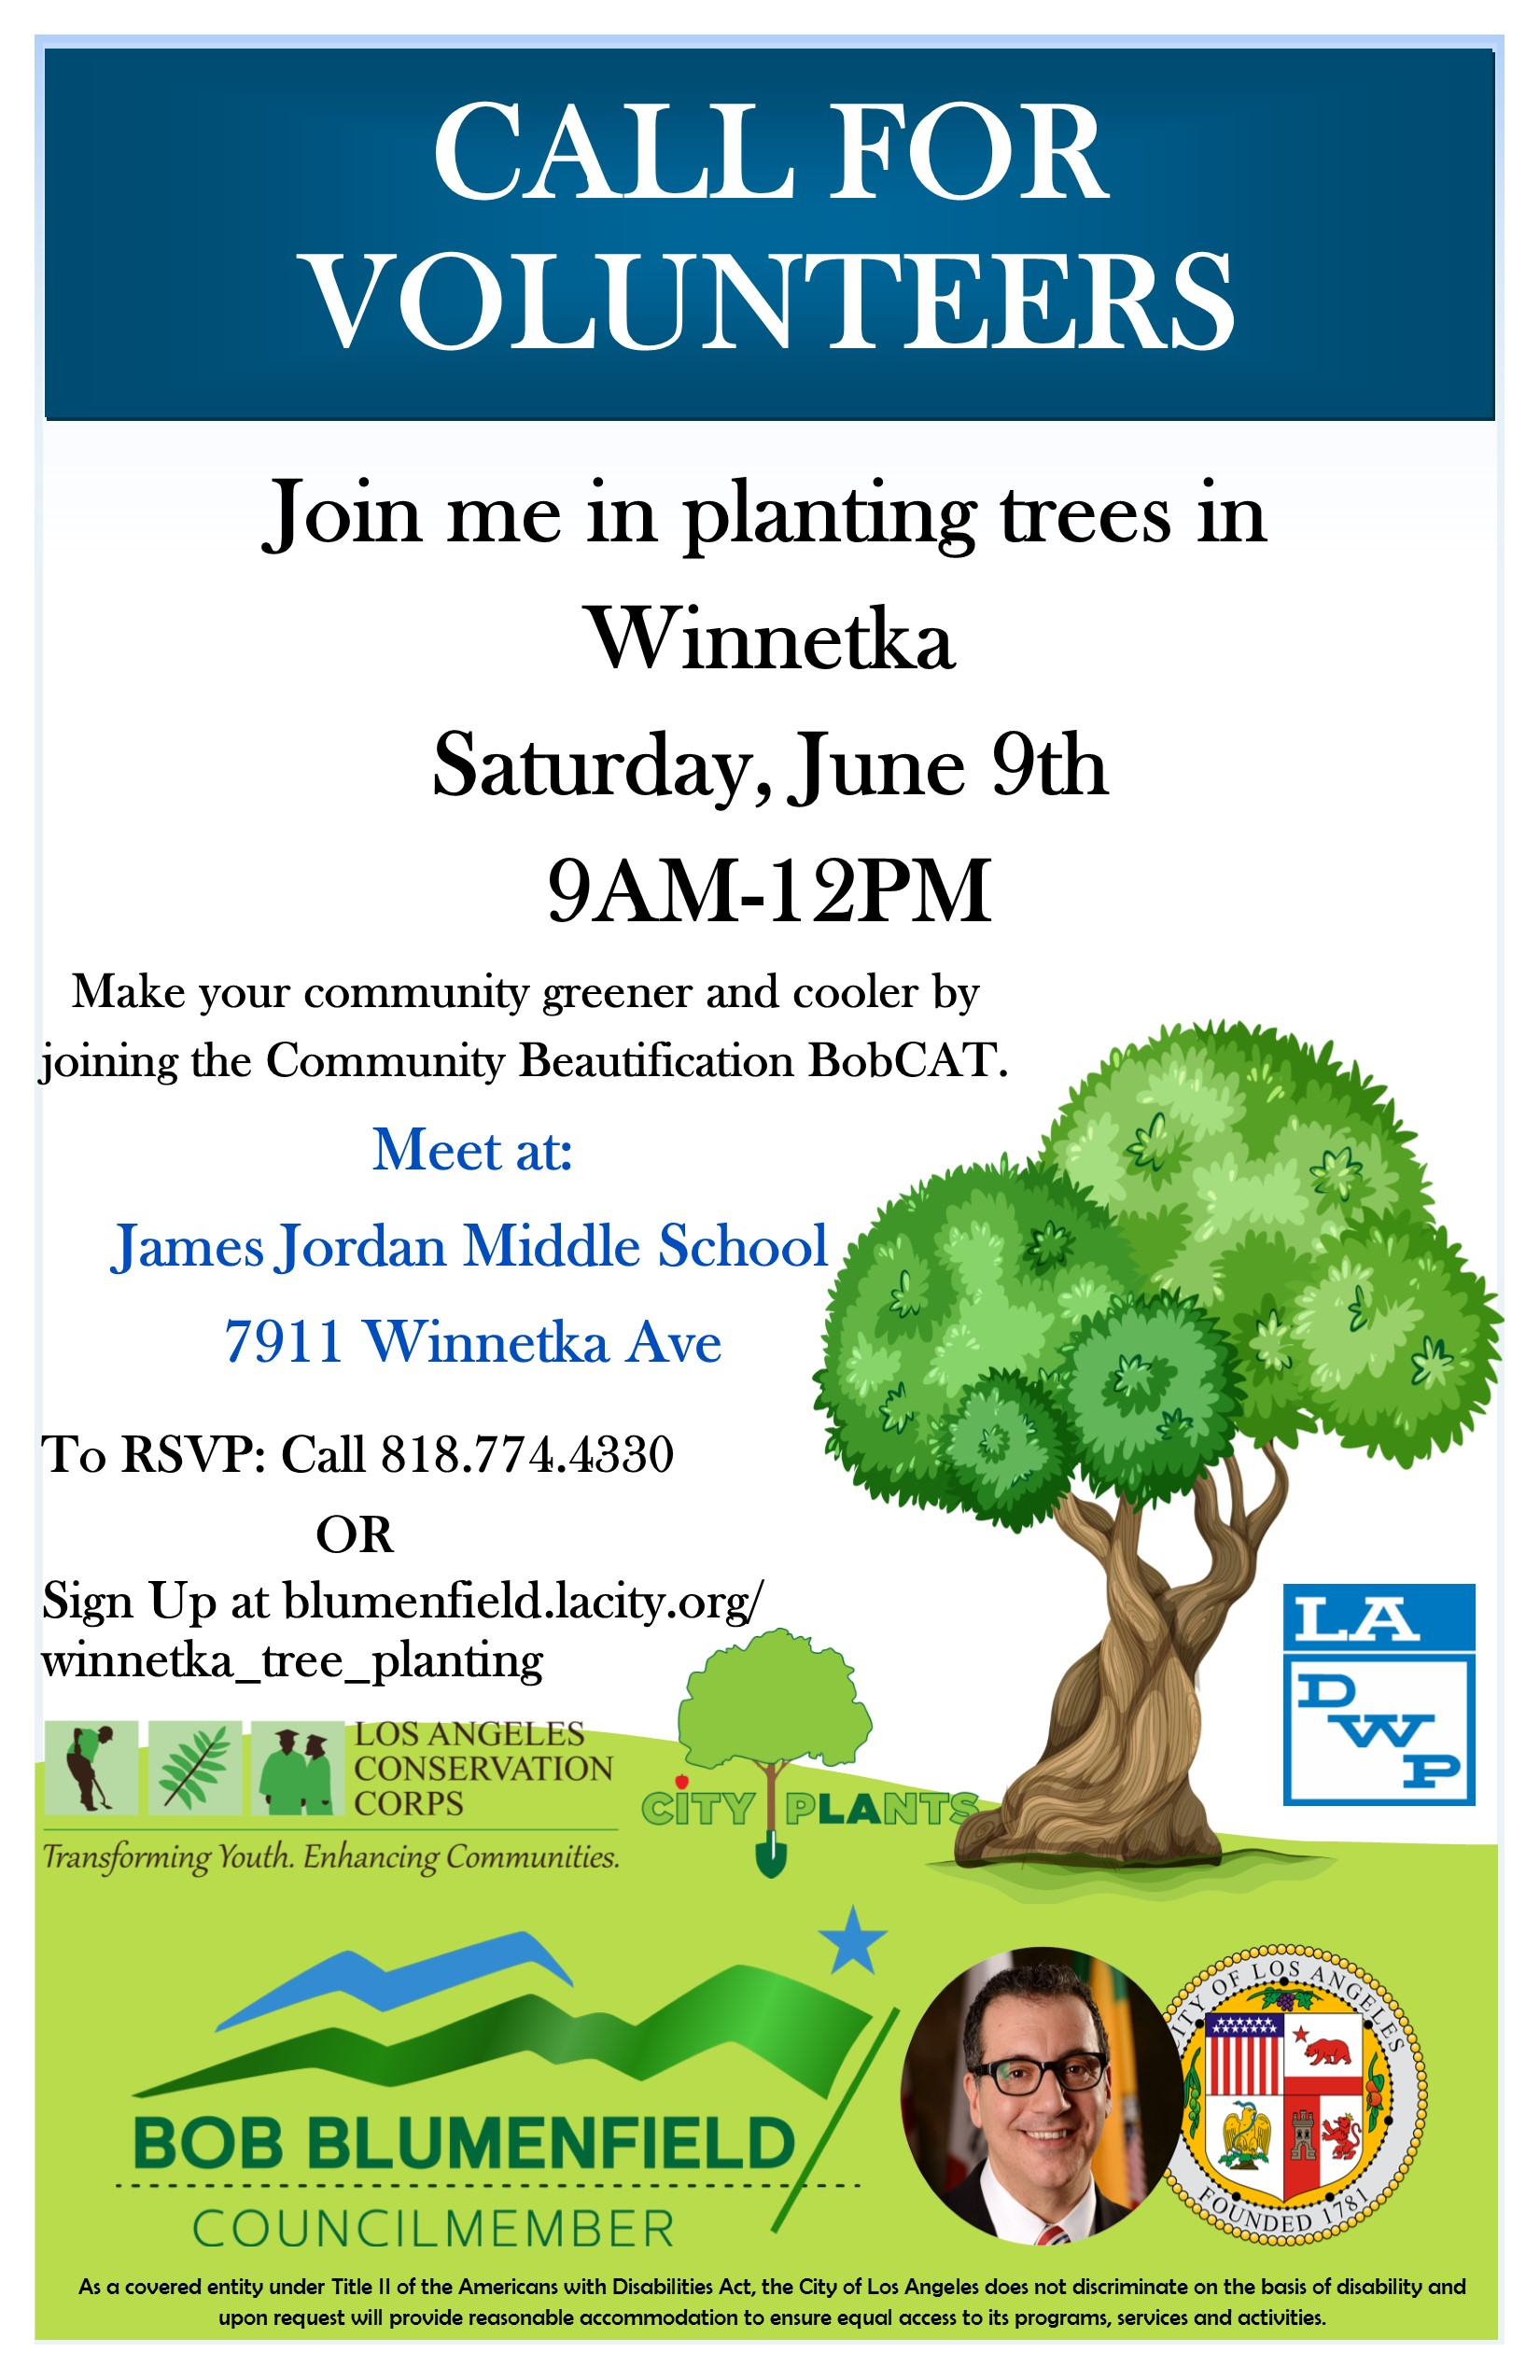 Winnetka_Tree_Planting_Sign_Up.jpg